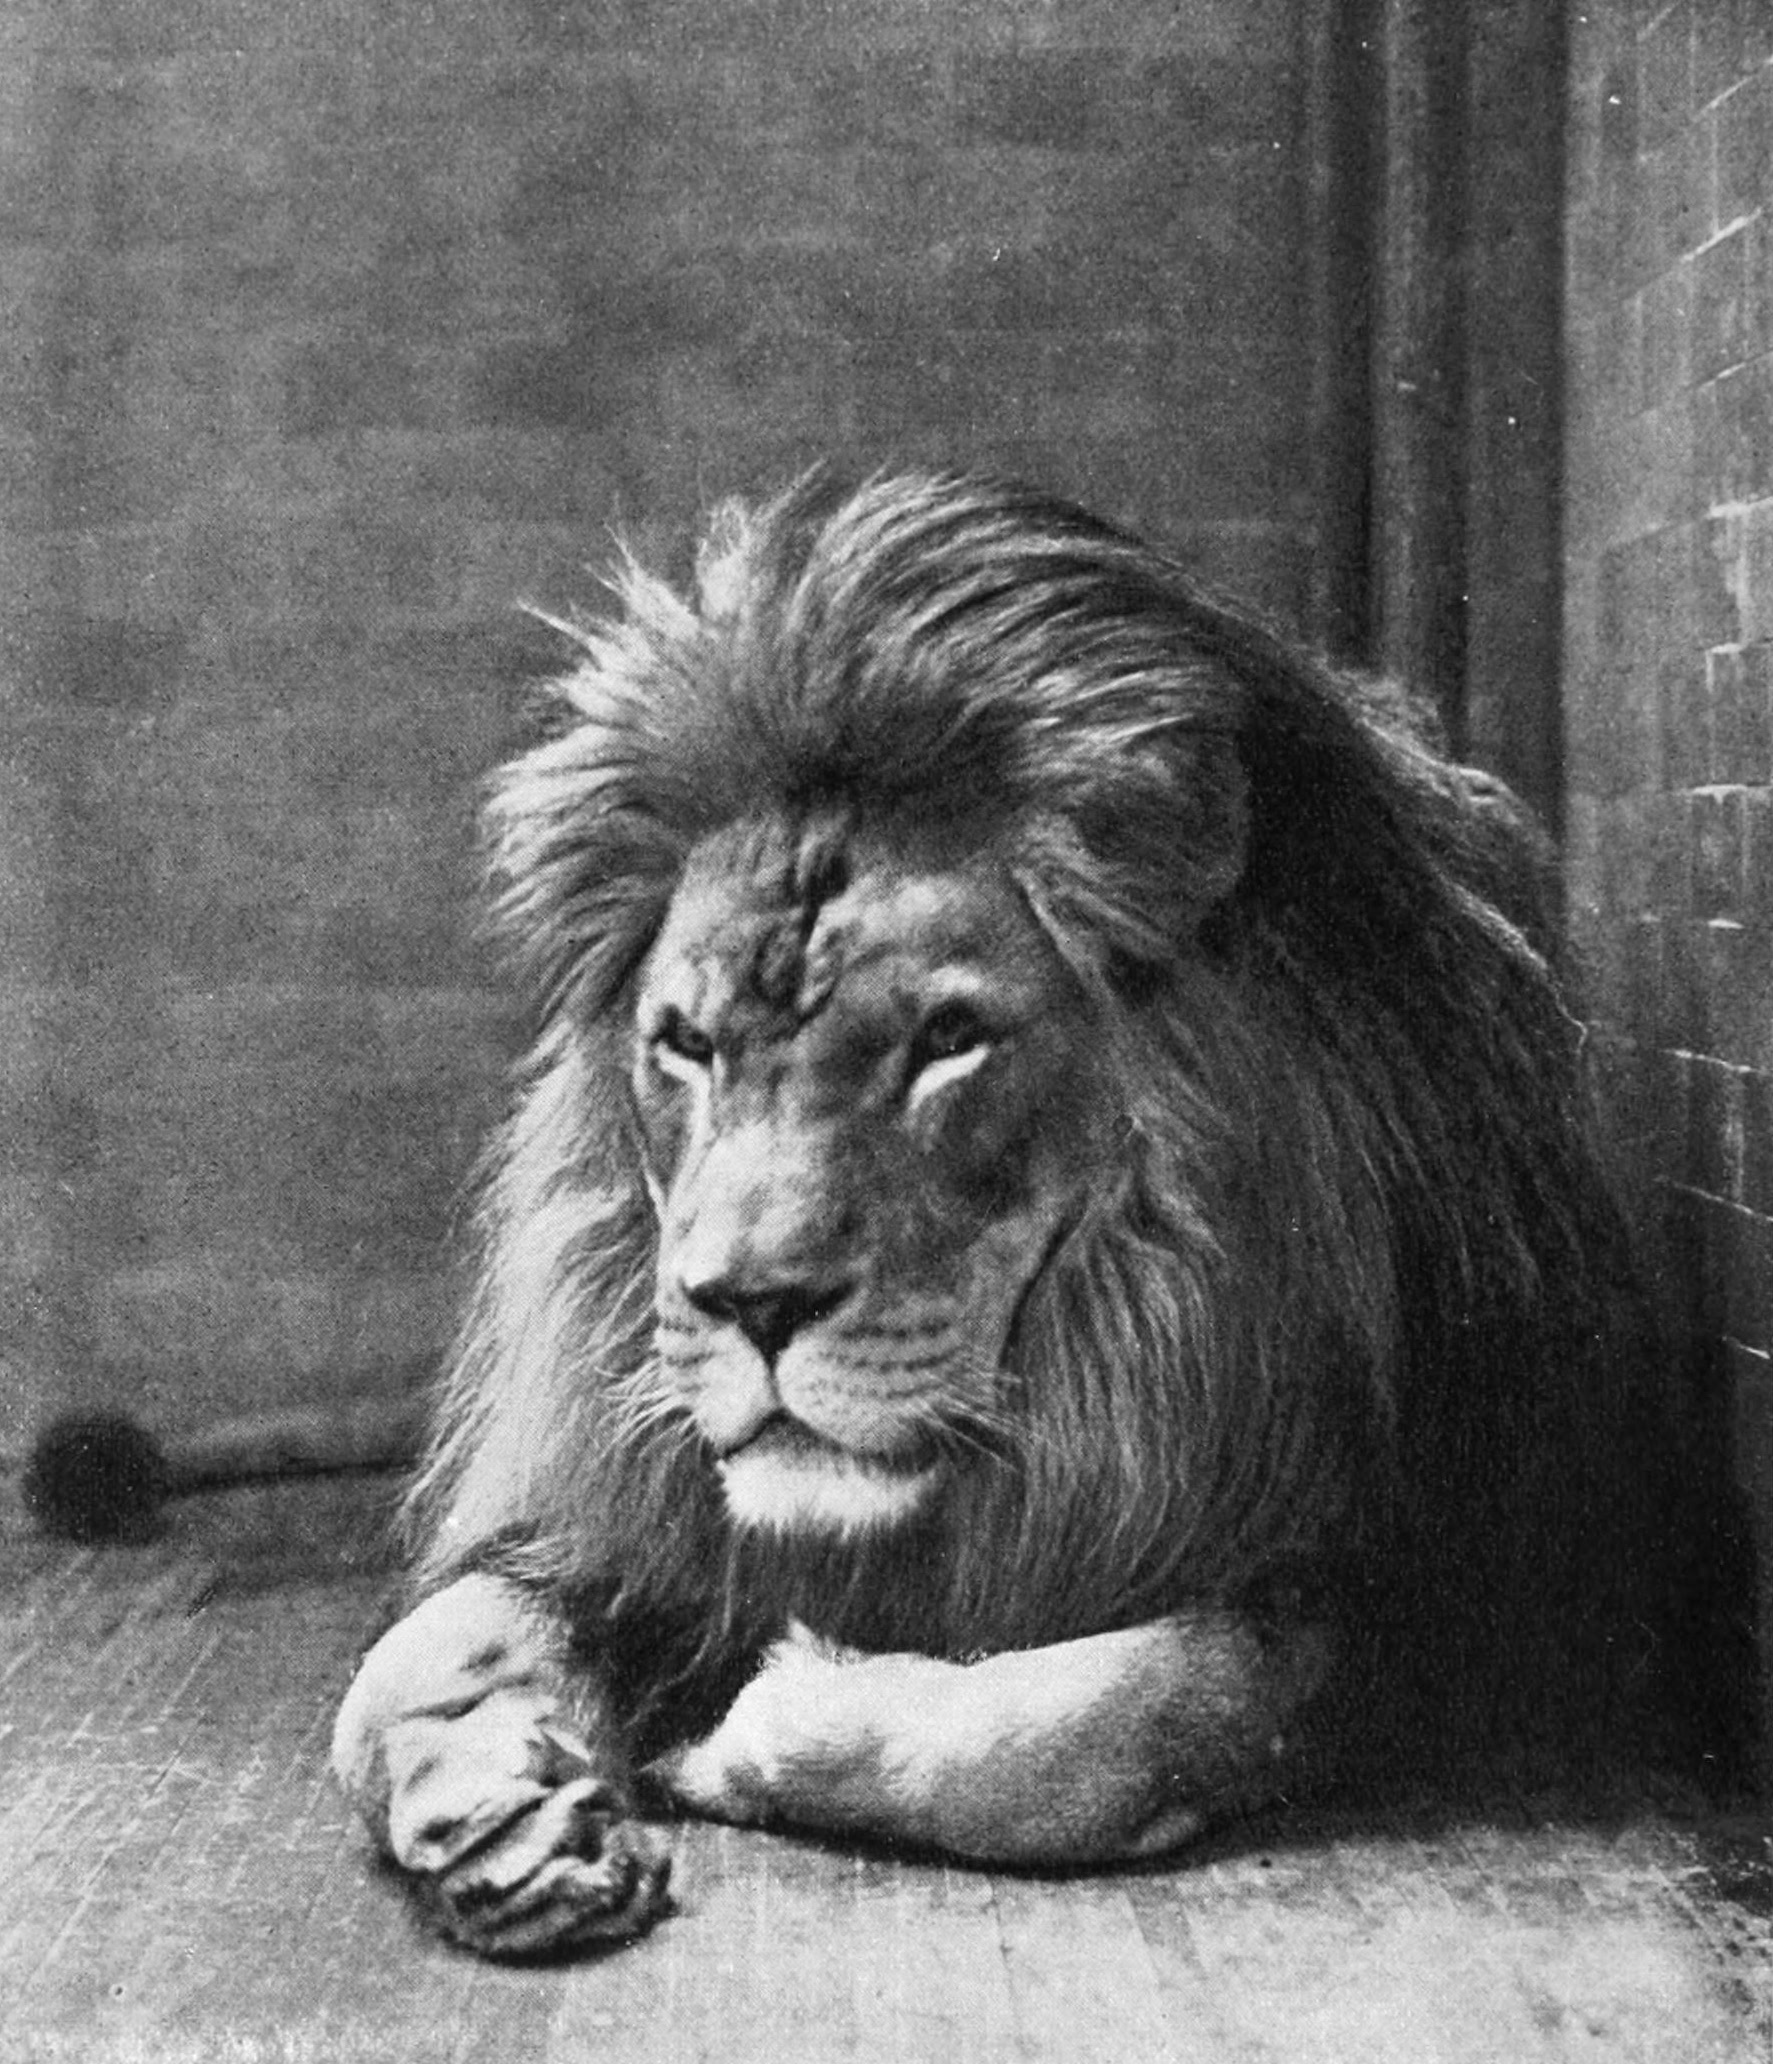 http://upload.wikimedia.org/wikipedia/commons/5/5a/Sultan_the_Barbary_Lion.jpg